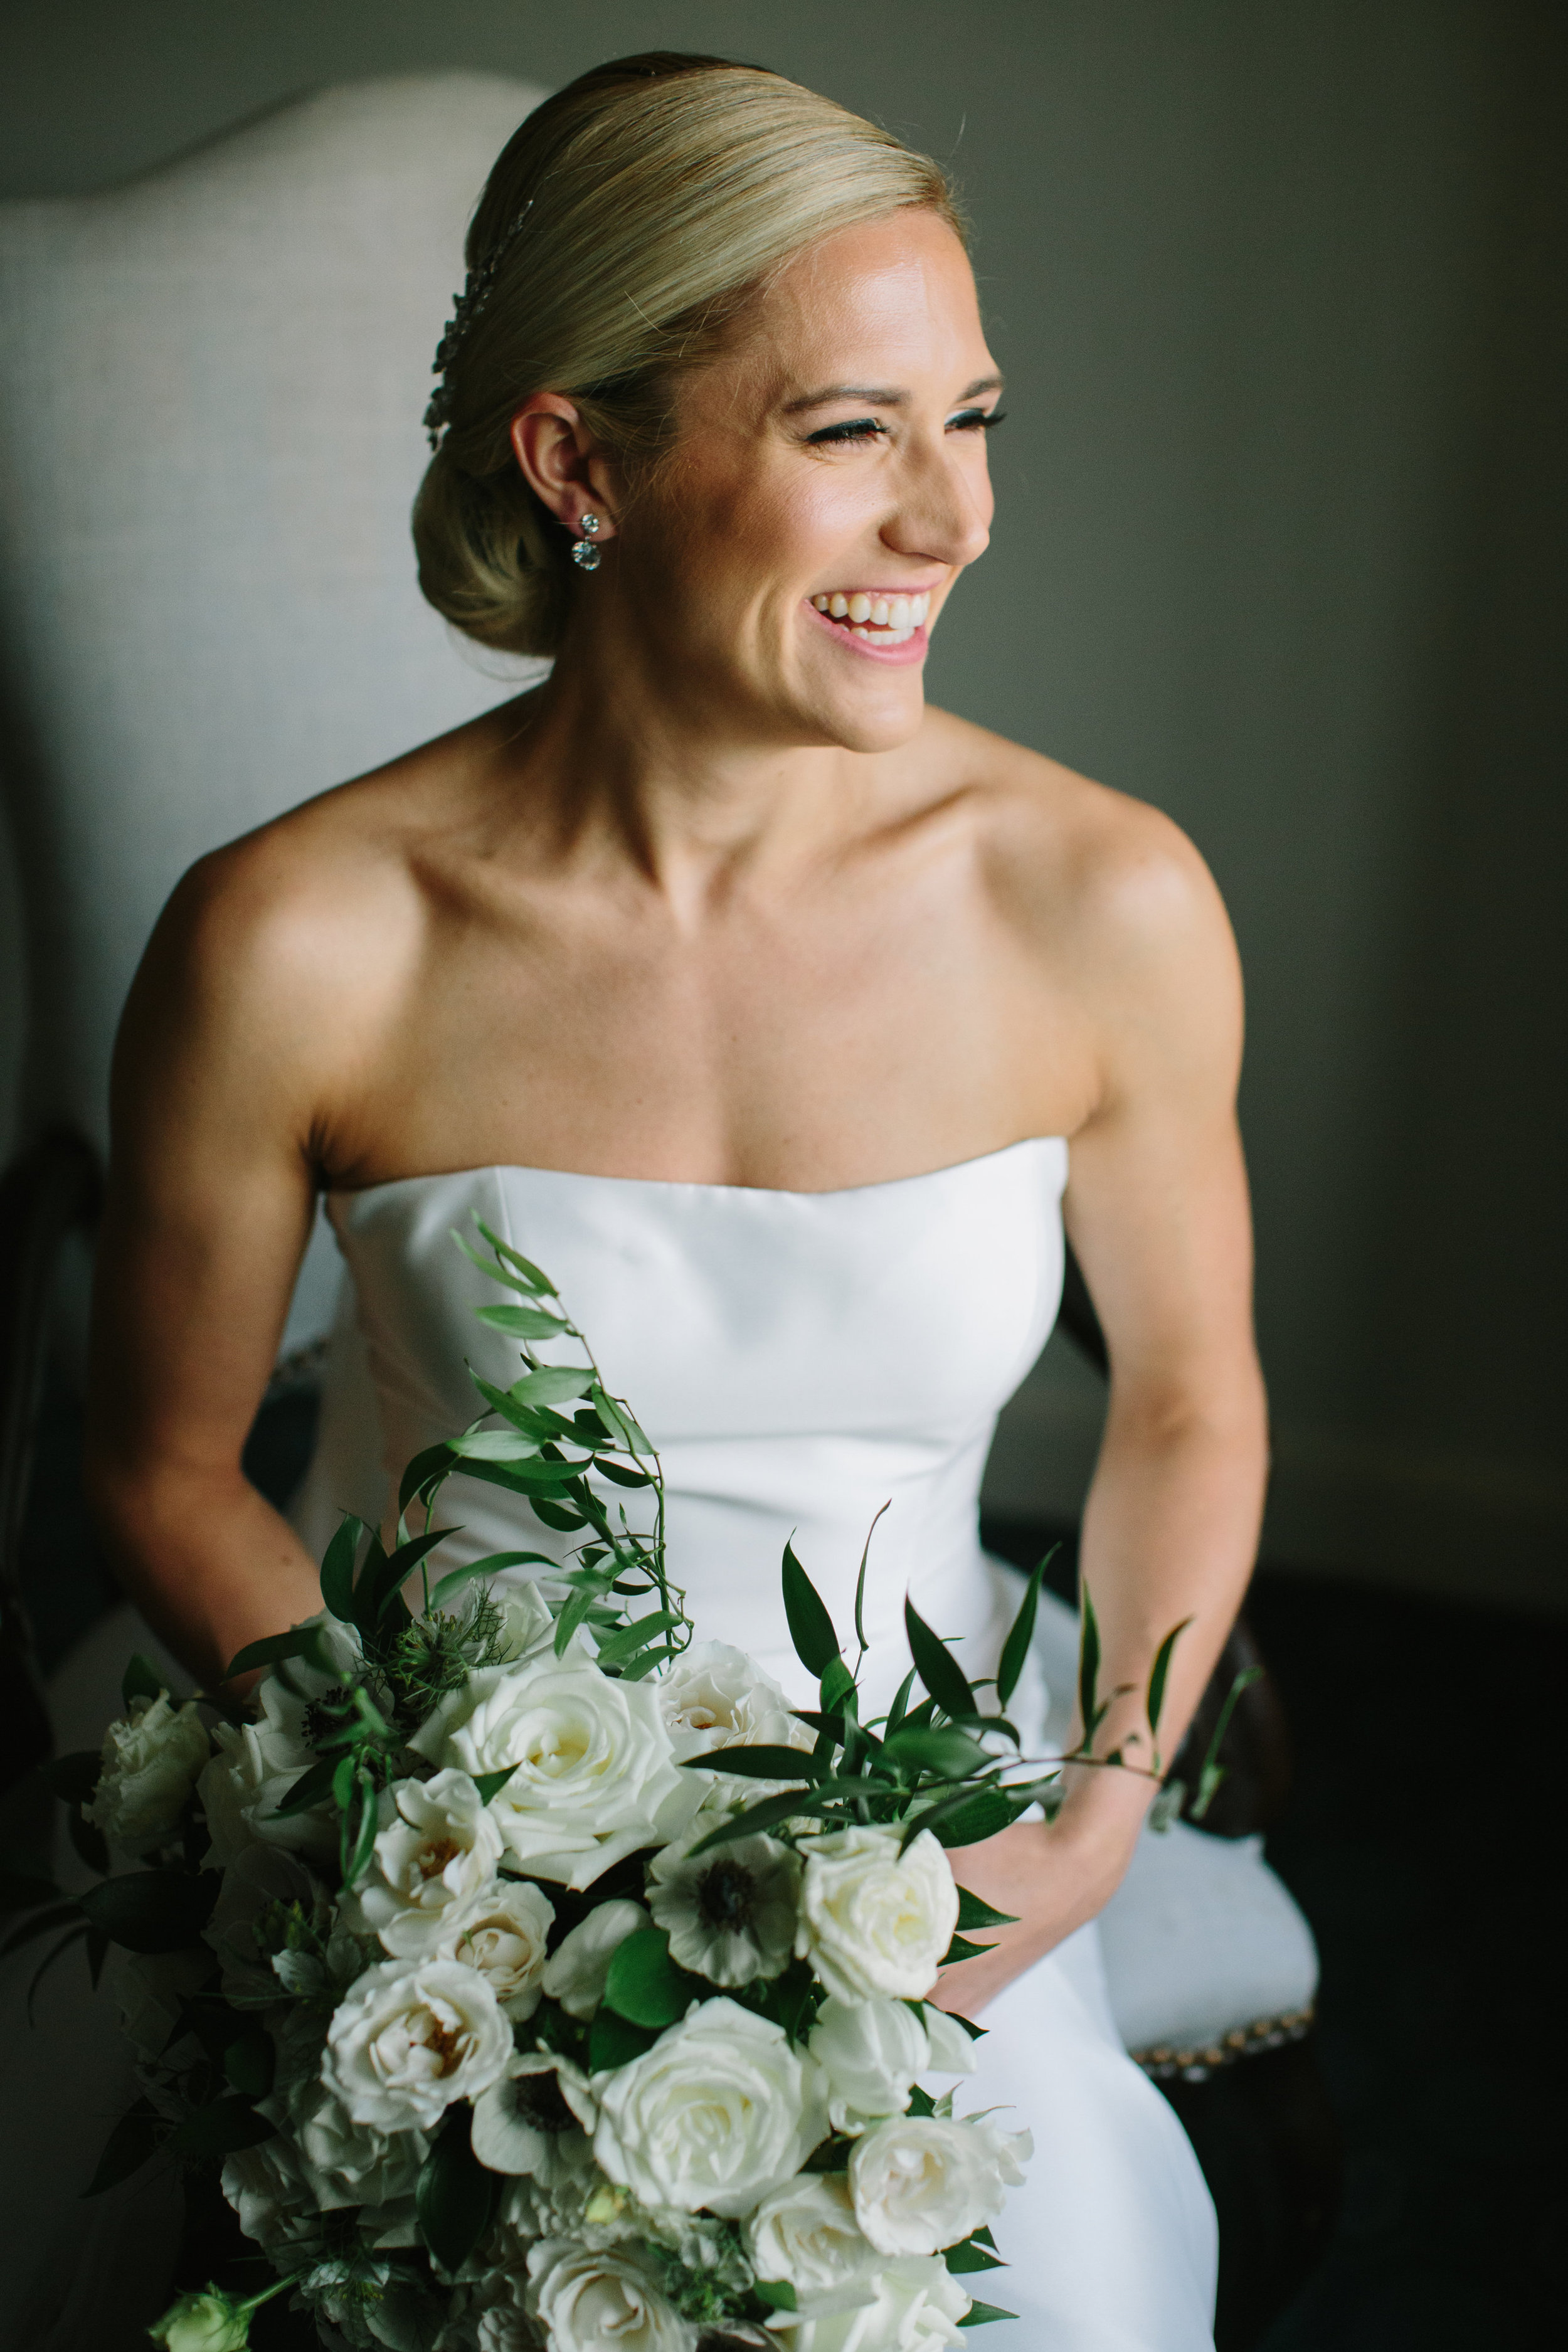 """Gourgous Bride - Erica's smile is completely infectious as she """"posy's"""" for pictures on her big day! No wedding jitters here!!"""